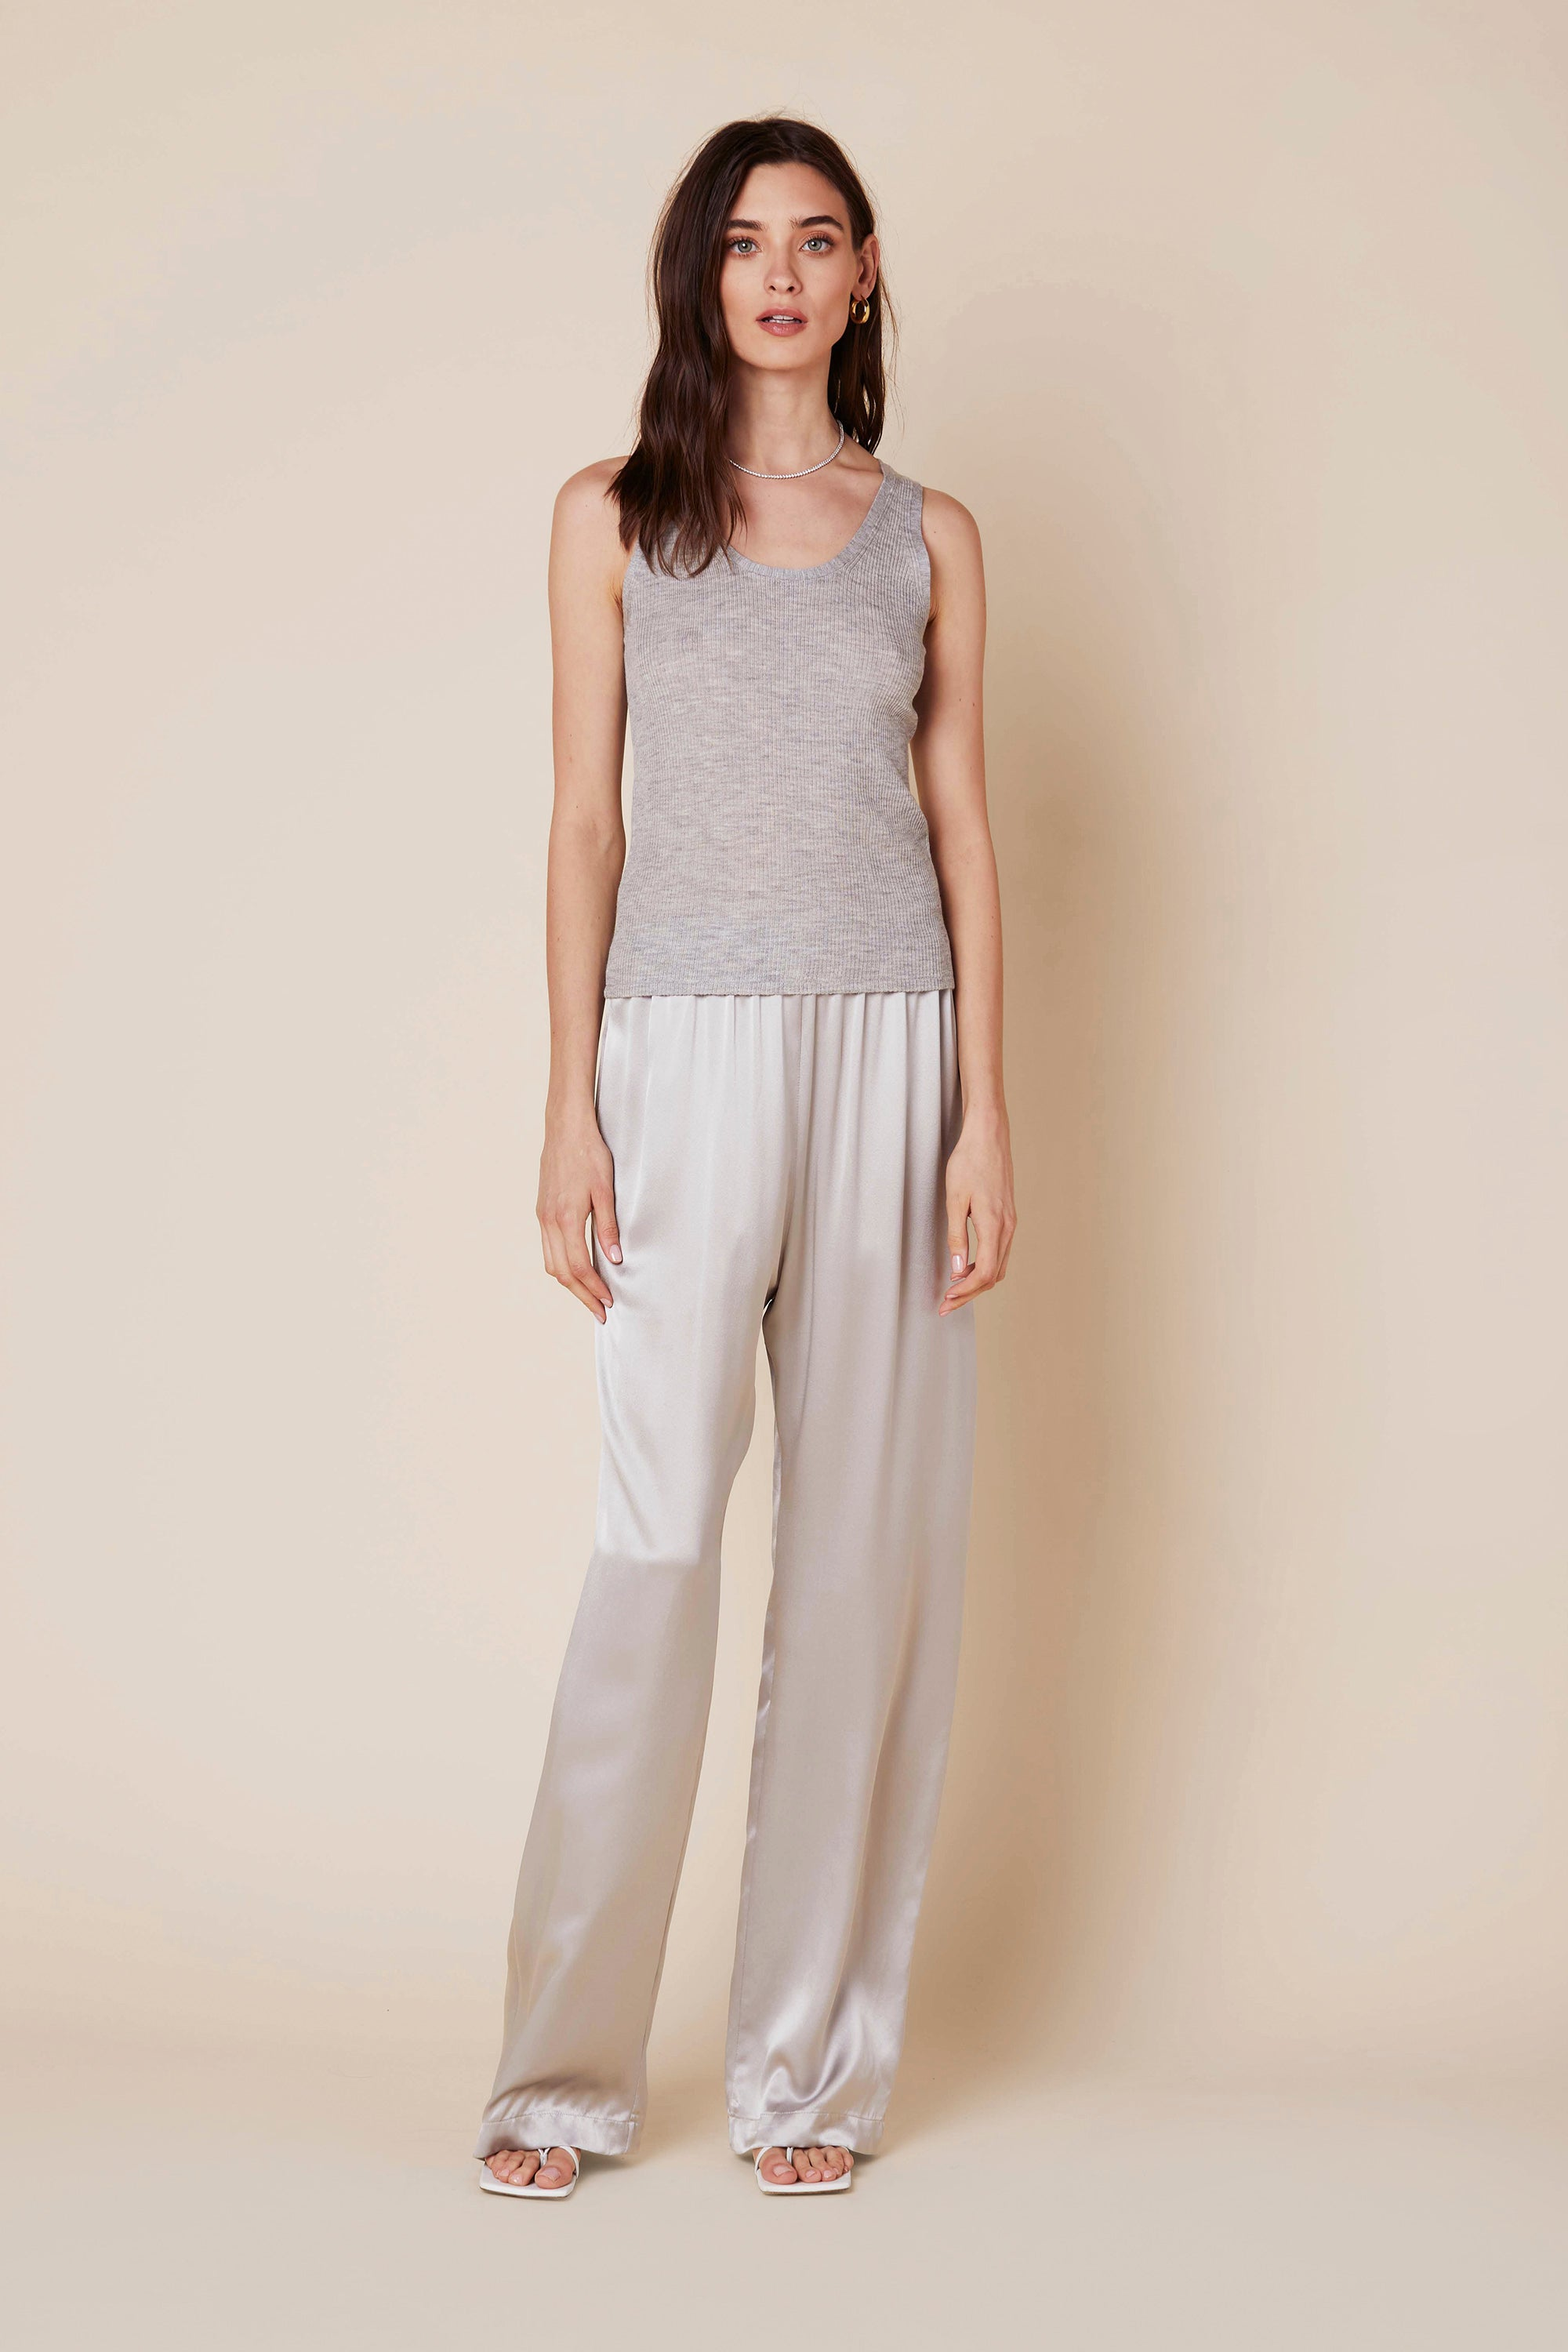 CASSIE CASHMERE TANK | PEBBLE - Final Sale